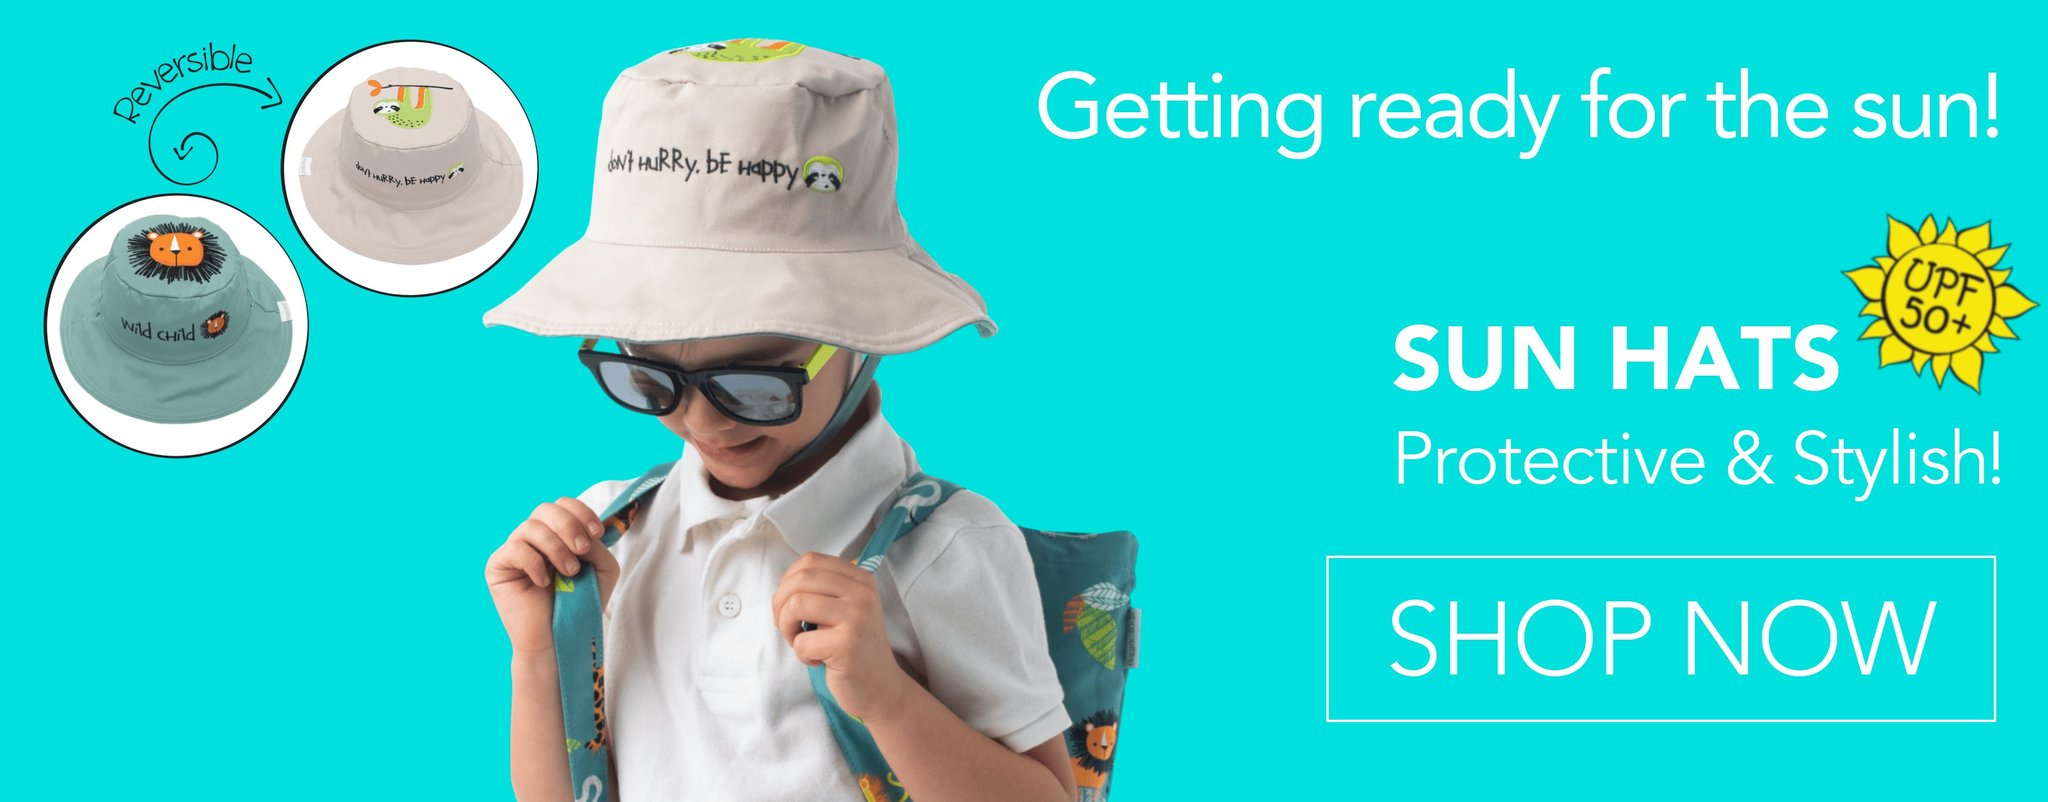 2019 Reversible Kids Sun Hats. Shop Now!